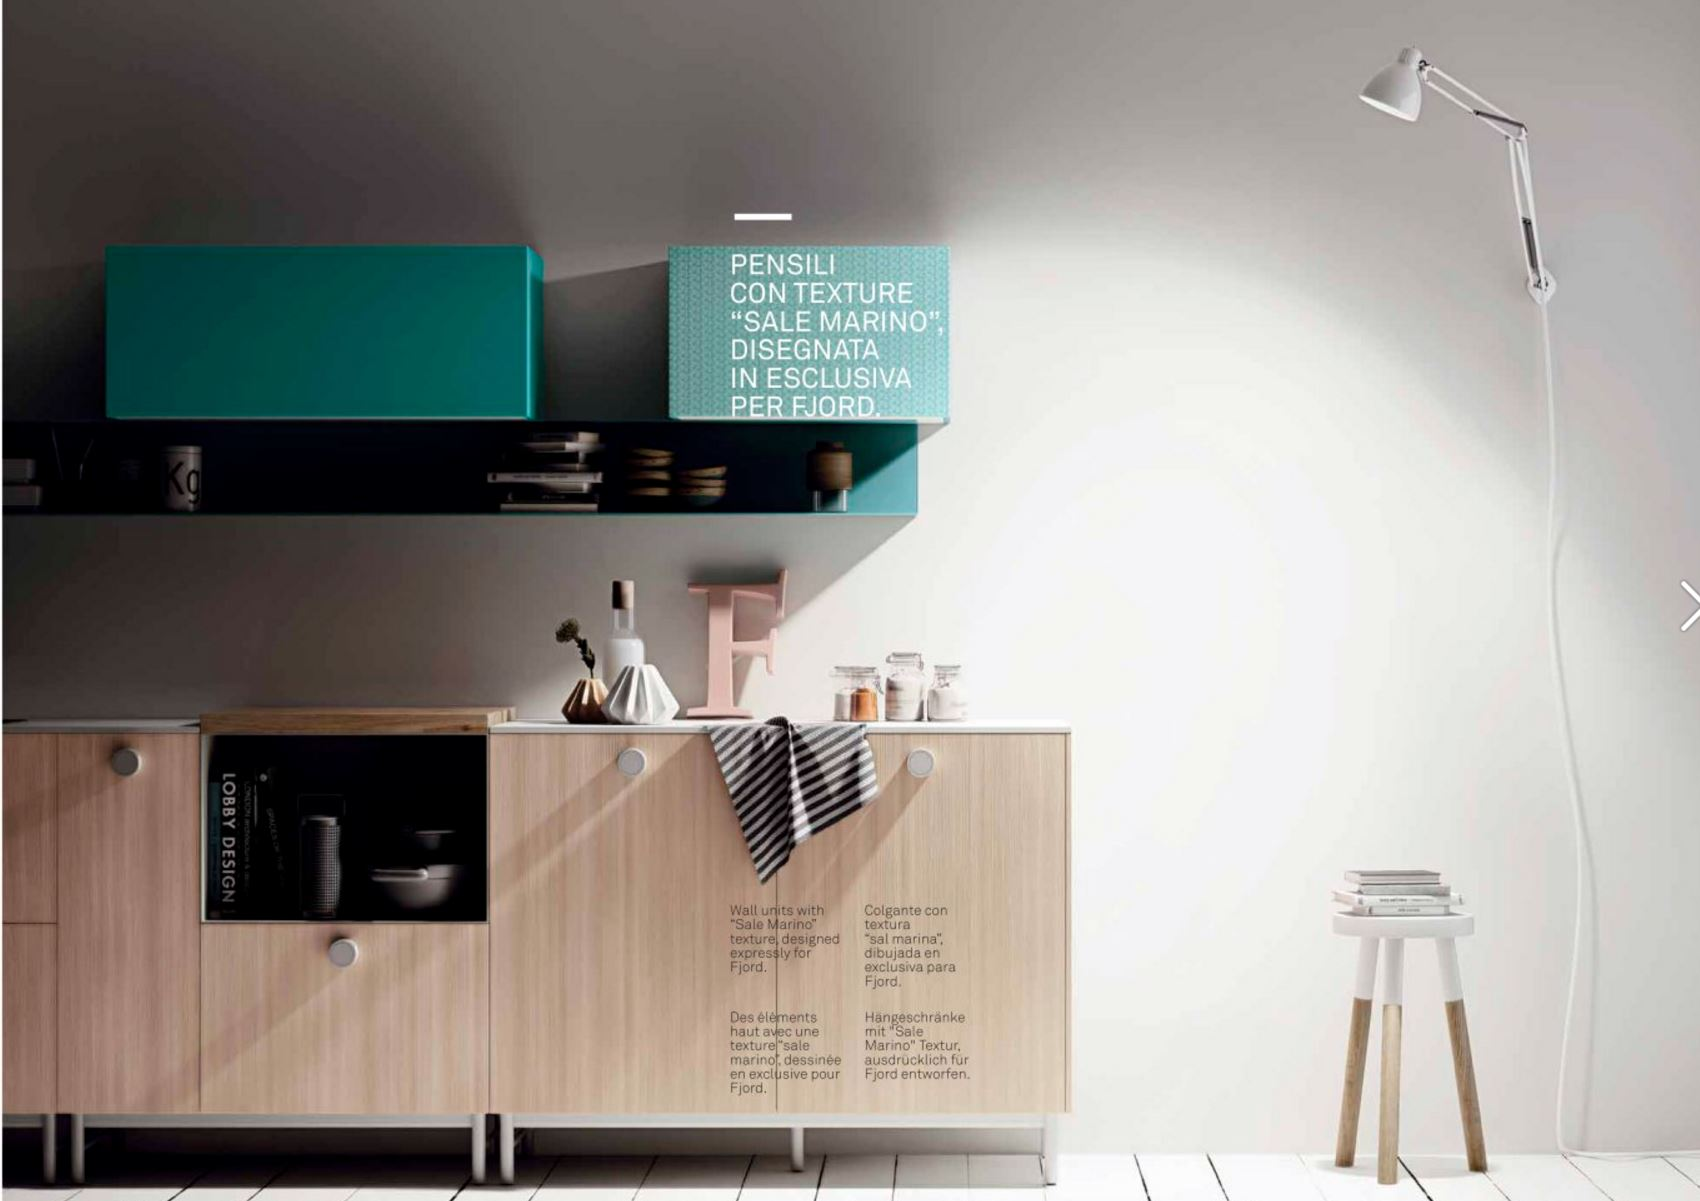 Kitchen - Doimo cucine 01.JPG